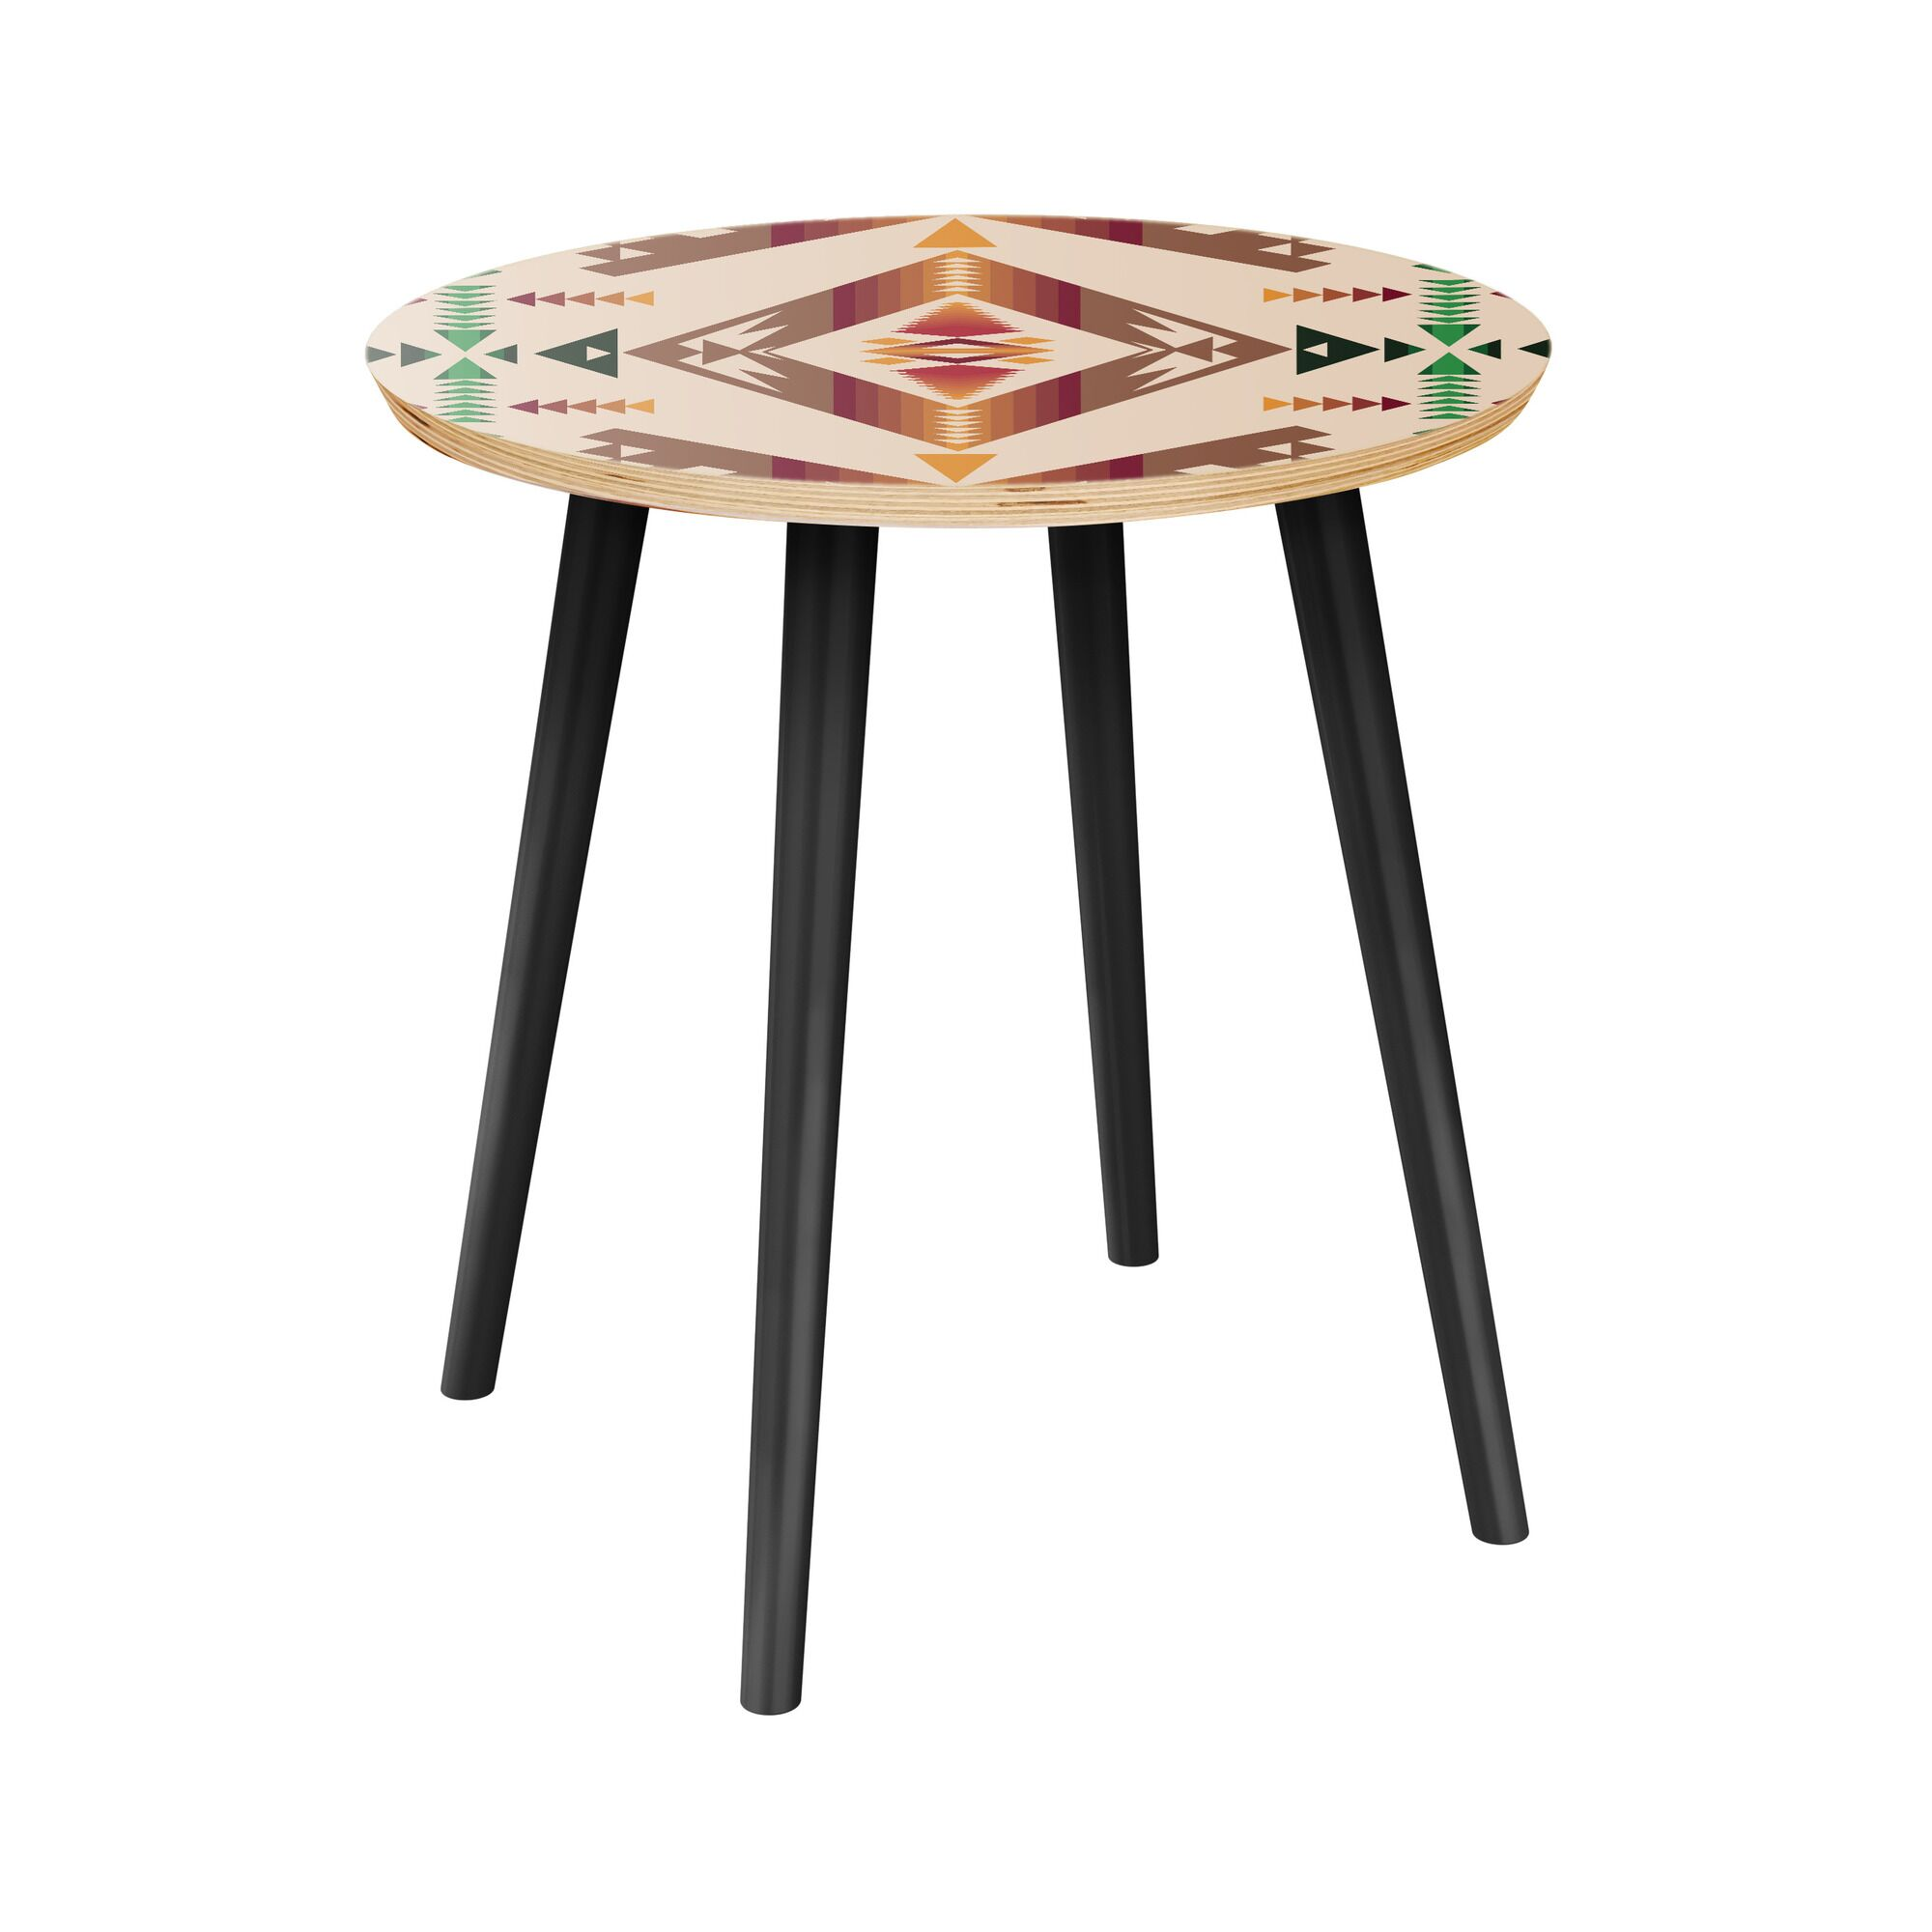 Aranha End Table Table Top Color: Natural, Table Base Color: Black